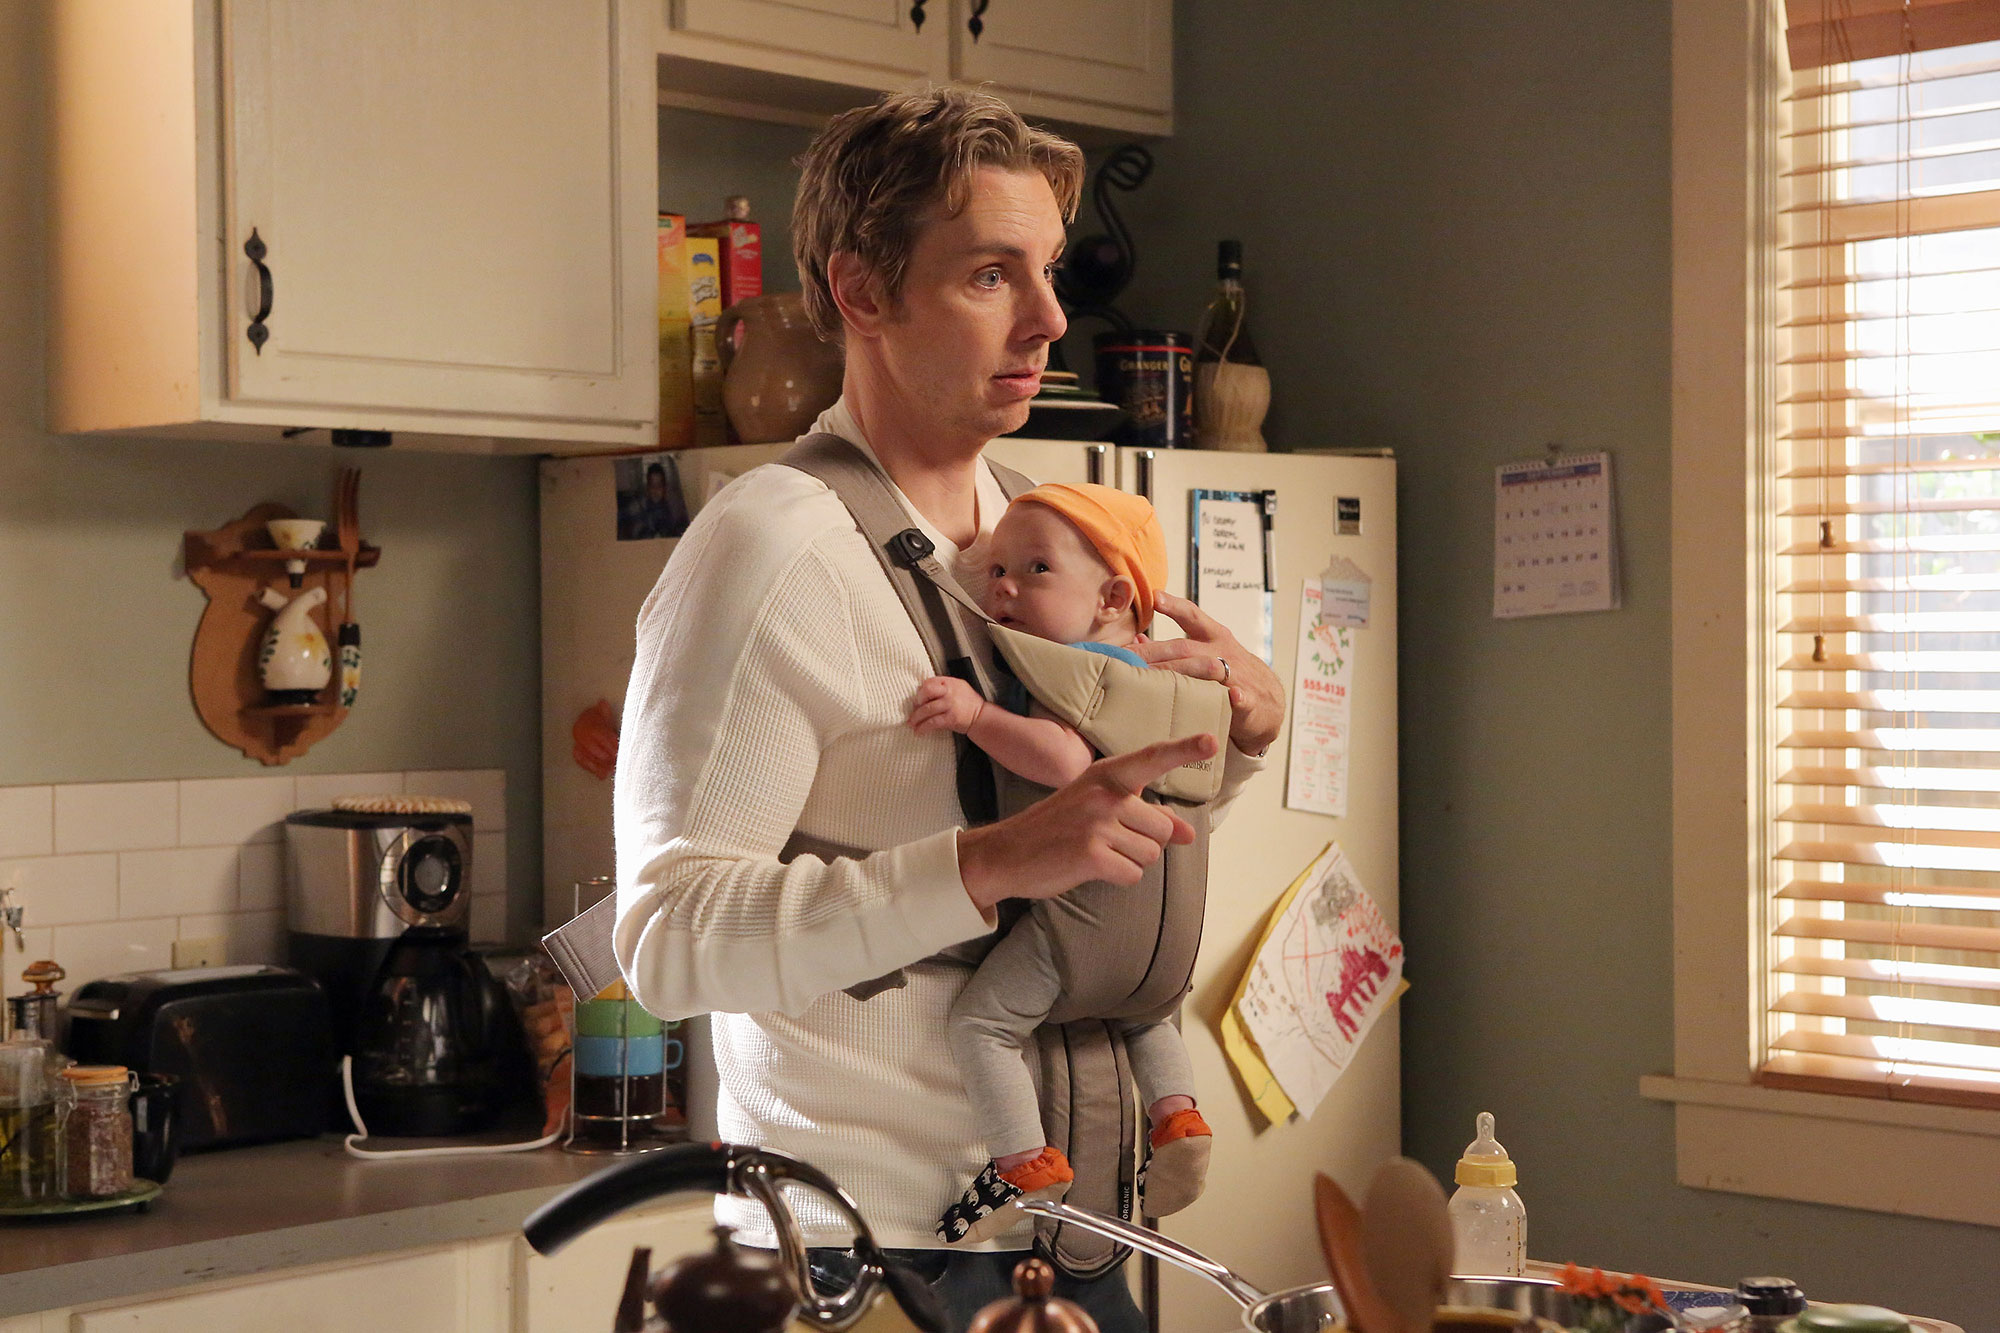 Dax Shepard Initially Turned Down 'Parenthood' to Be With Kristen Bell - Dax Shepard as Crosby Braverman in 'Parenthood.'